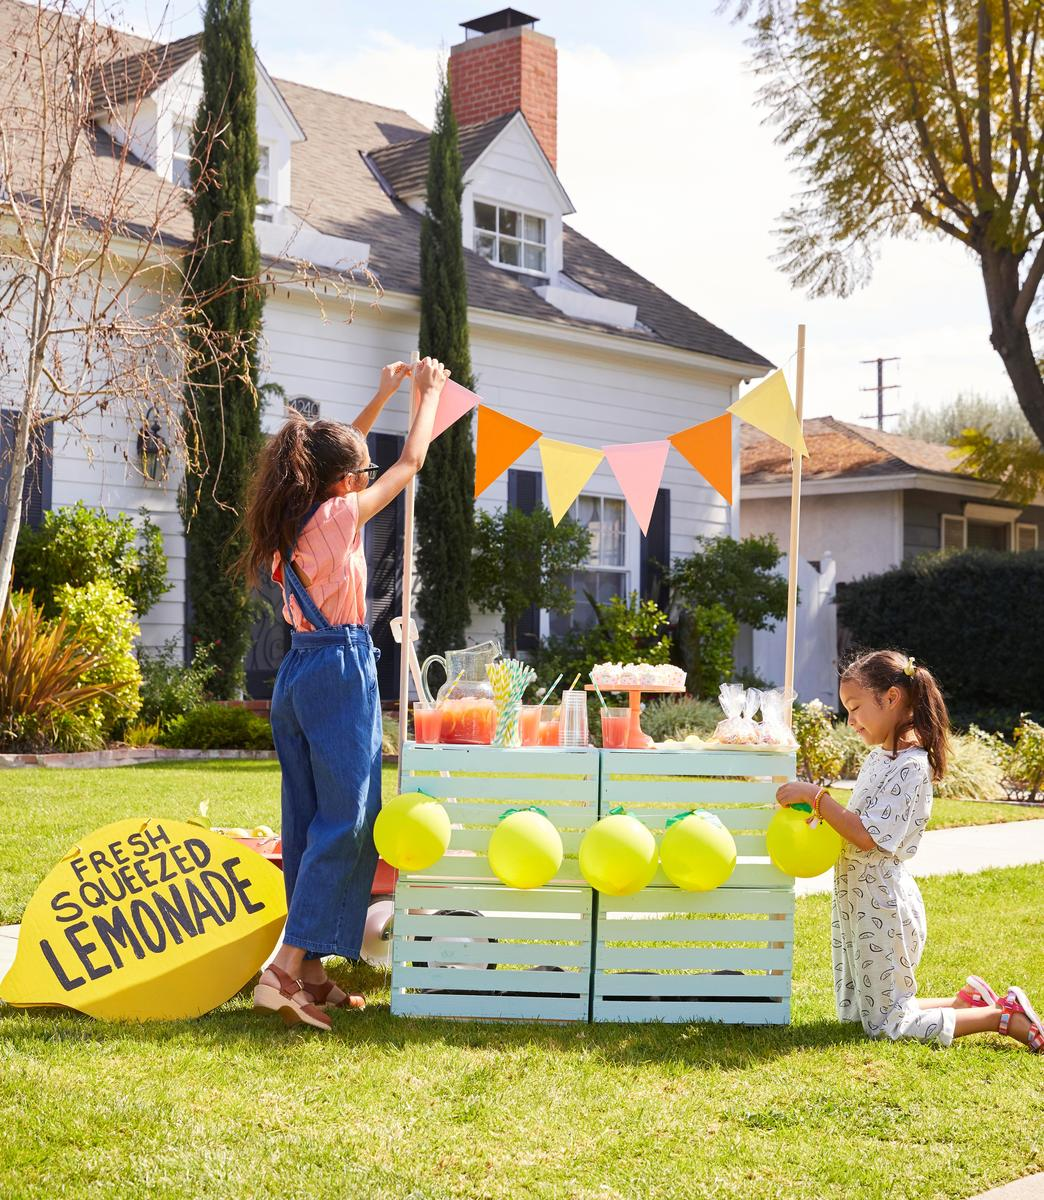 How to Have the Ultimate Lemonade Stand